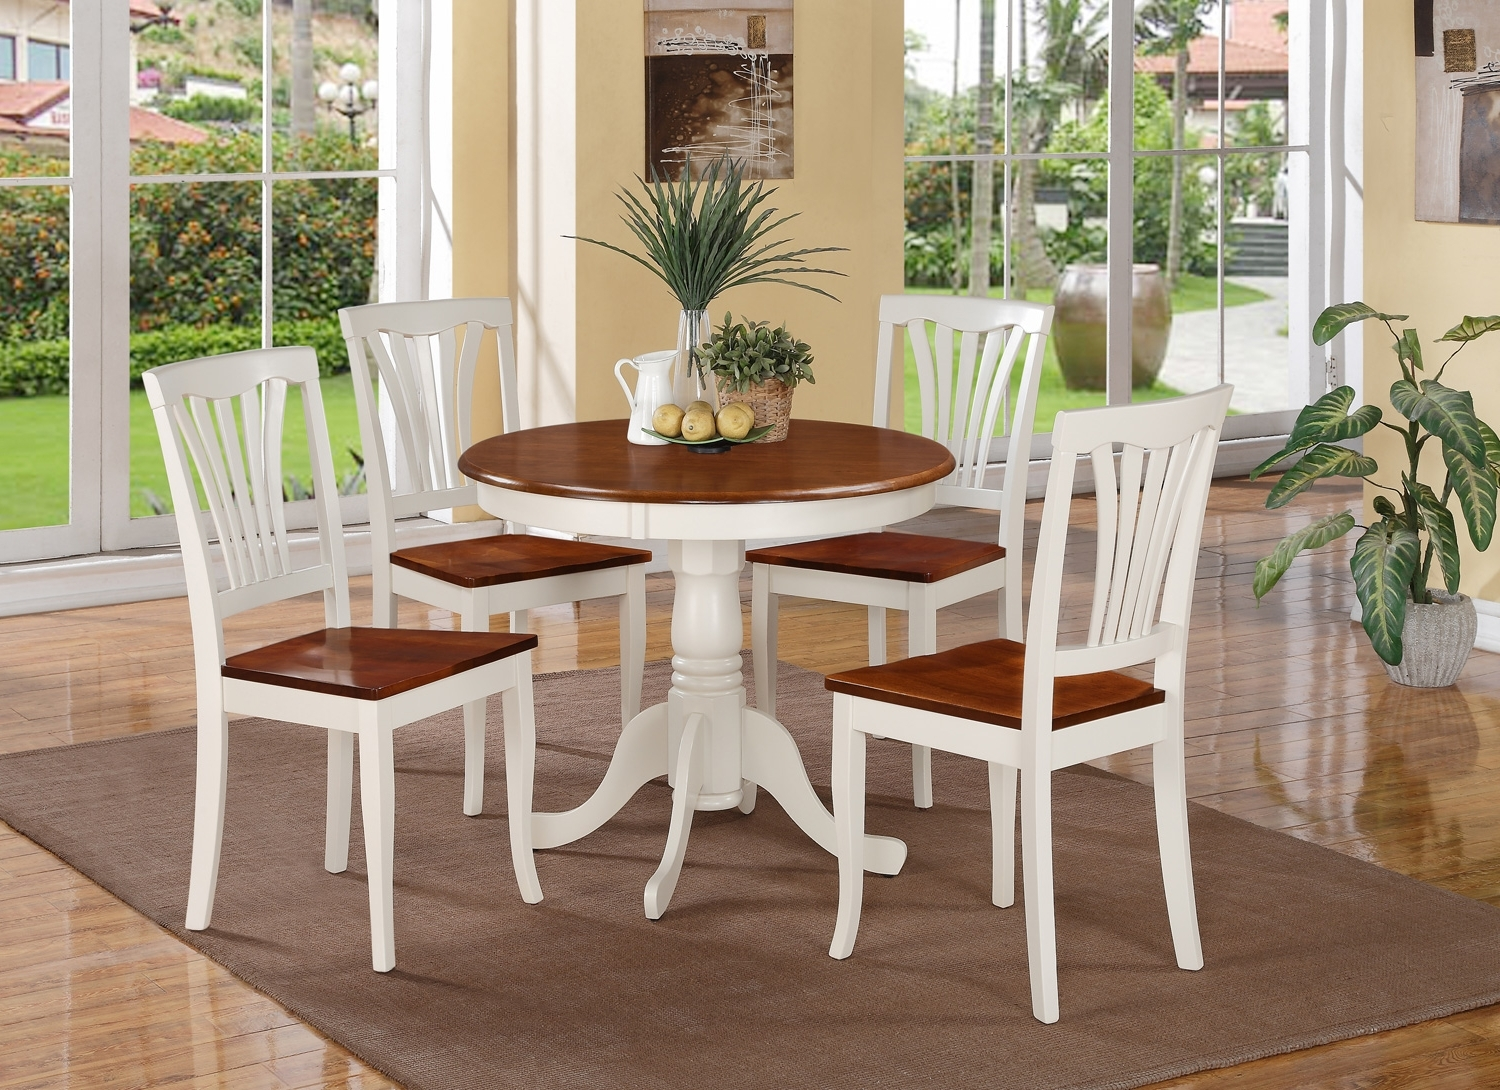 5 Pc Round Small Table Kitchen Table And 4 Wood Chairs Buttermilk Finish Throughout Most Popular Small Dining Sets (View 2 of 25)